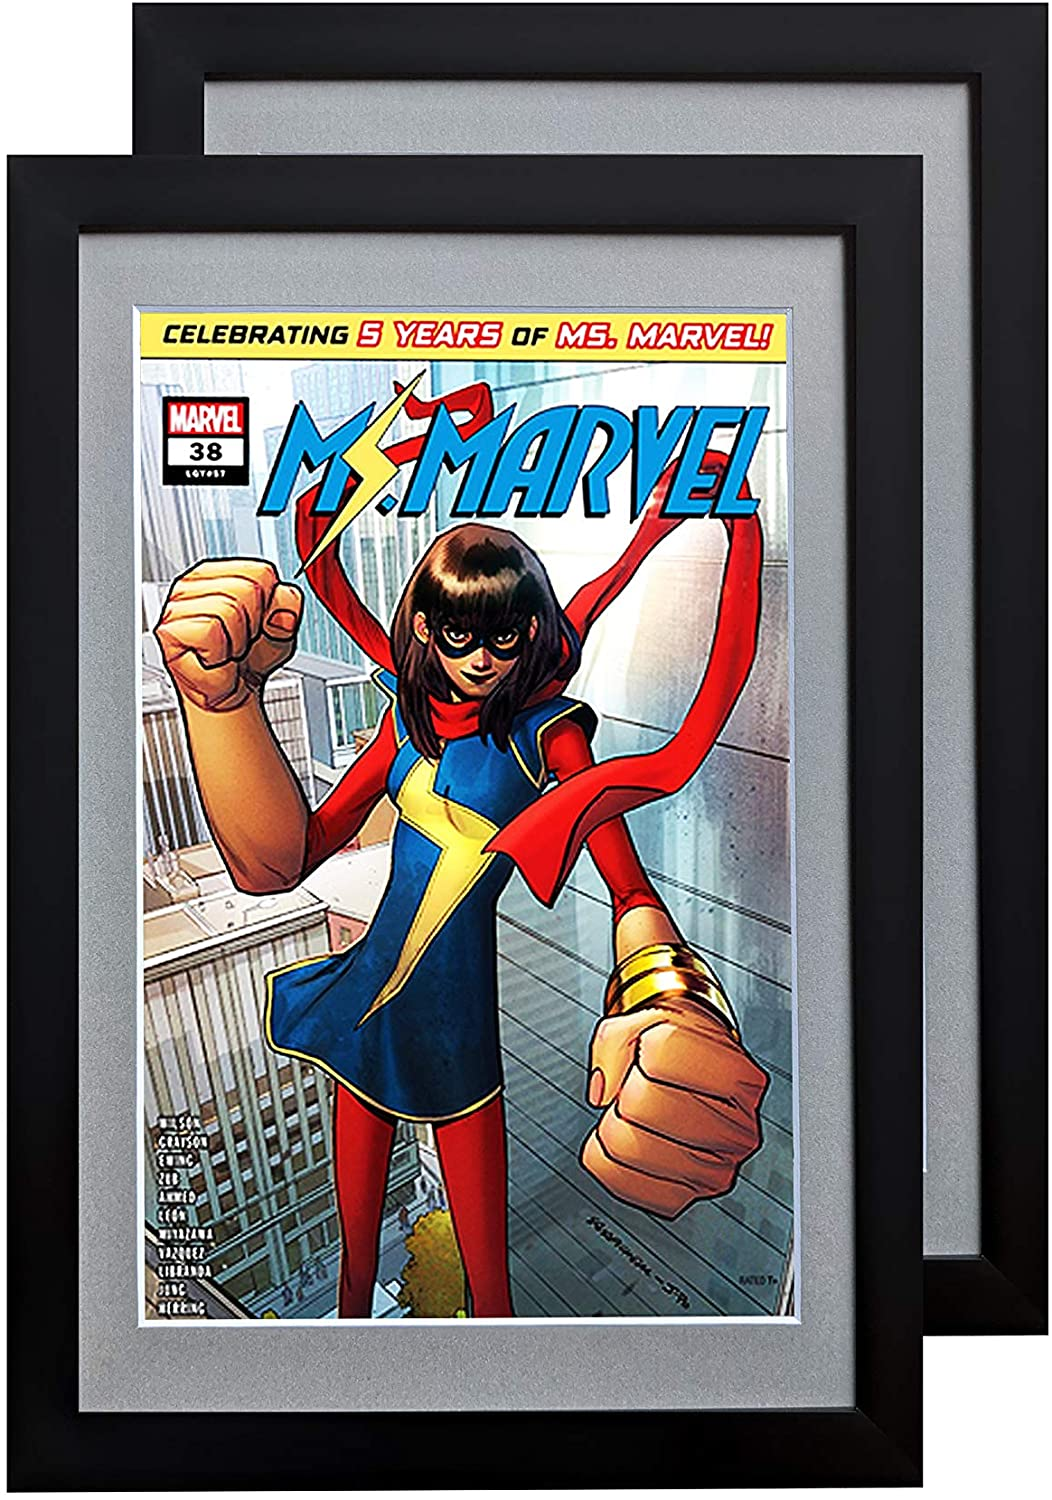 Comic Book Frame 2 Pack, Acid-Free Matting, 98% Ultraviolet UV Polycarbonate Protection, Fits Comics up to 6 3/4